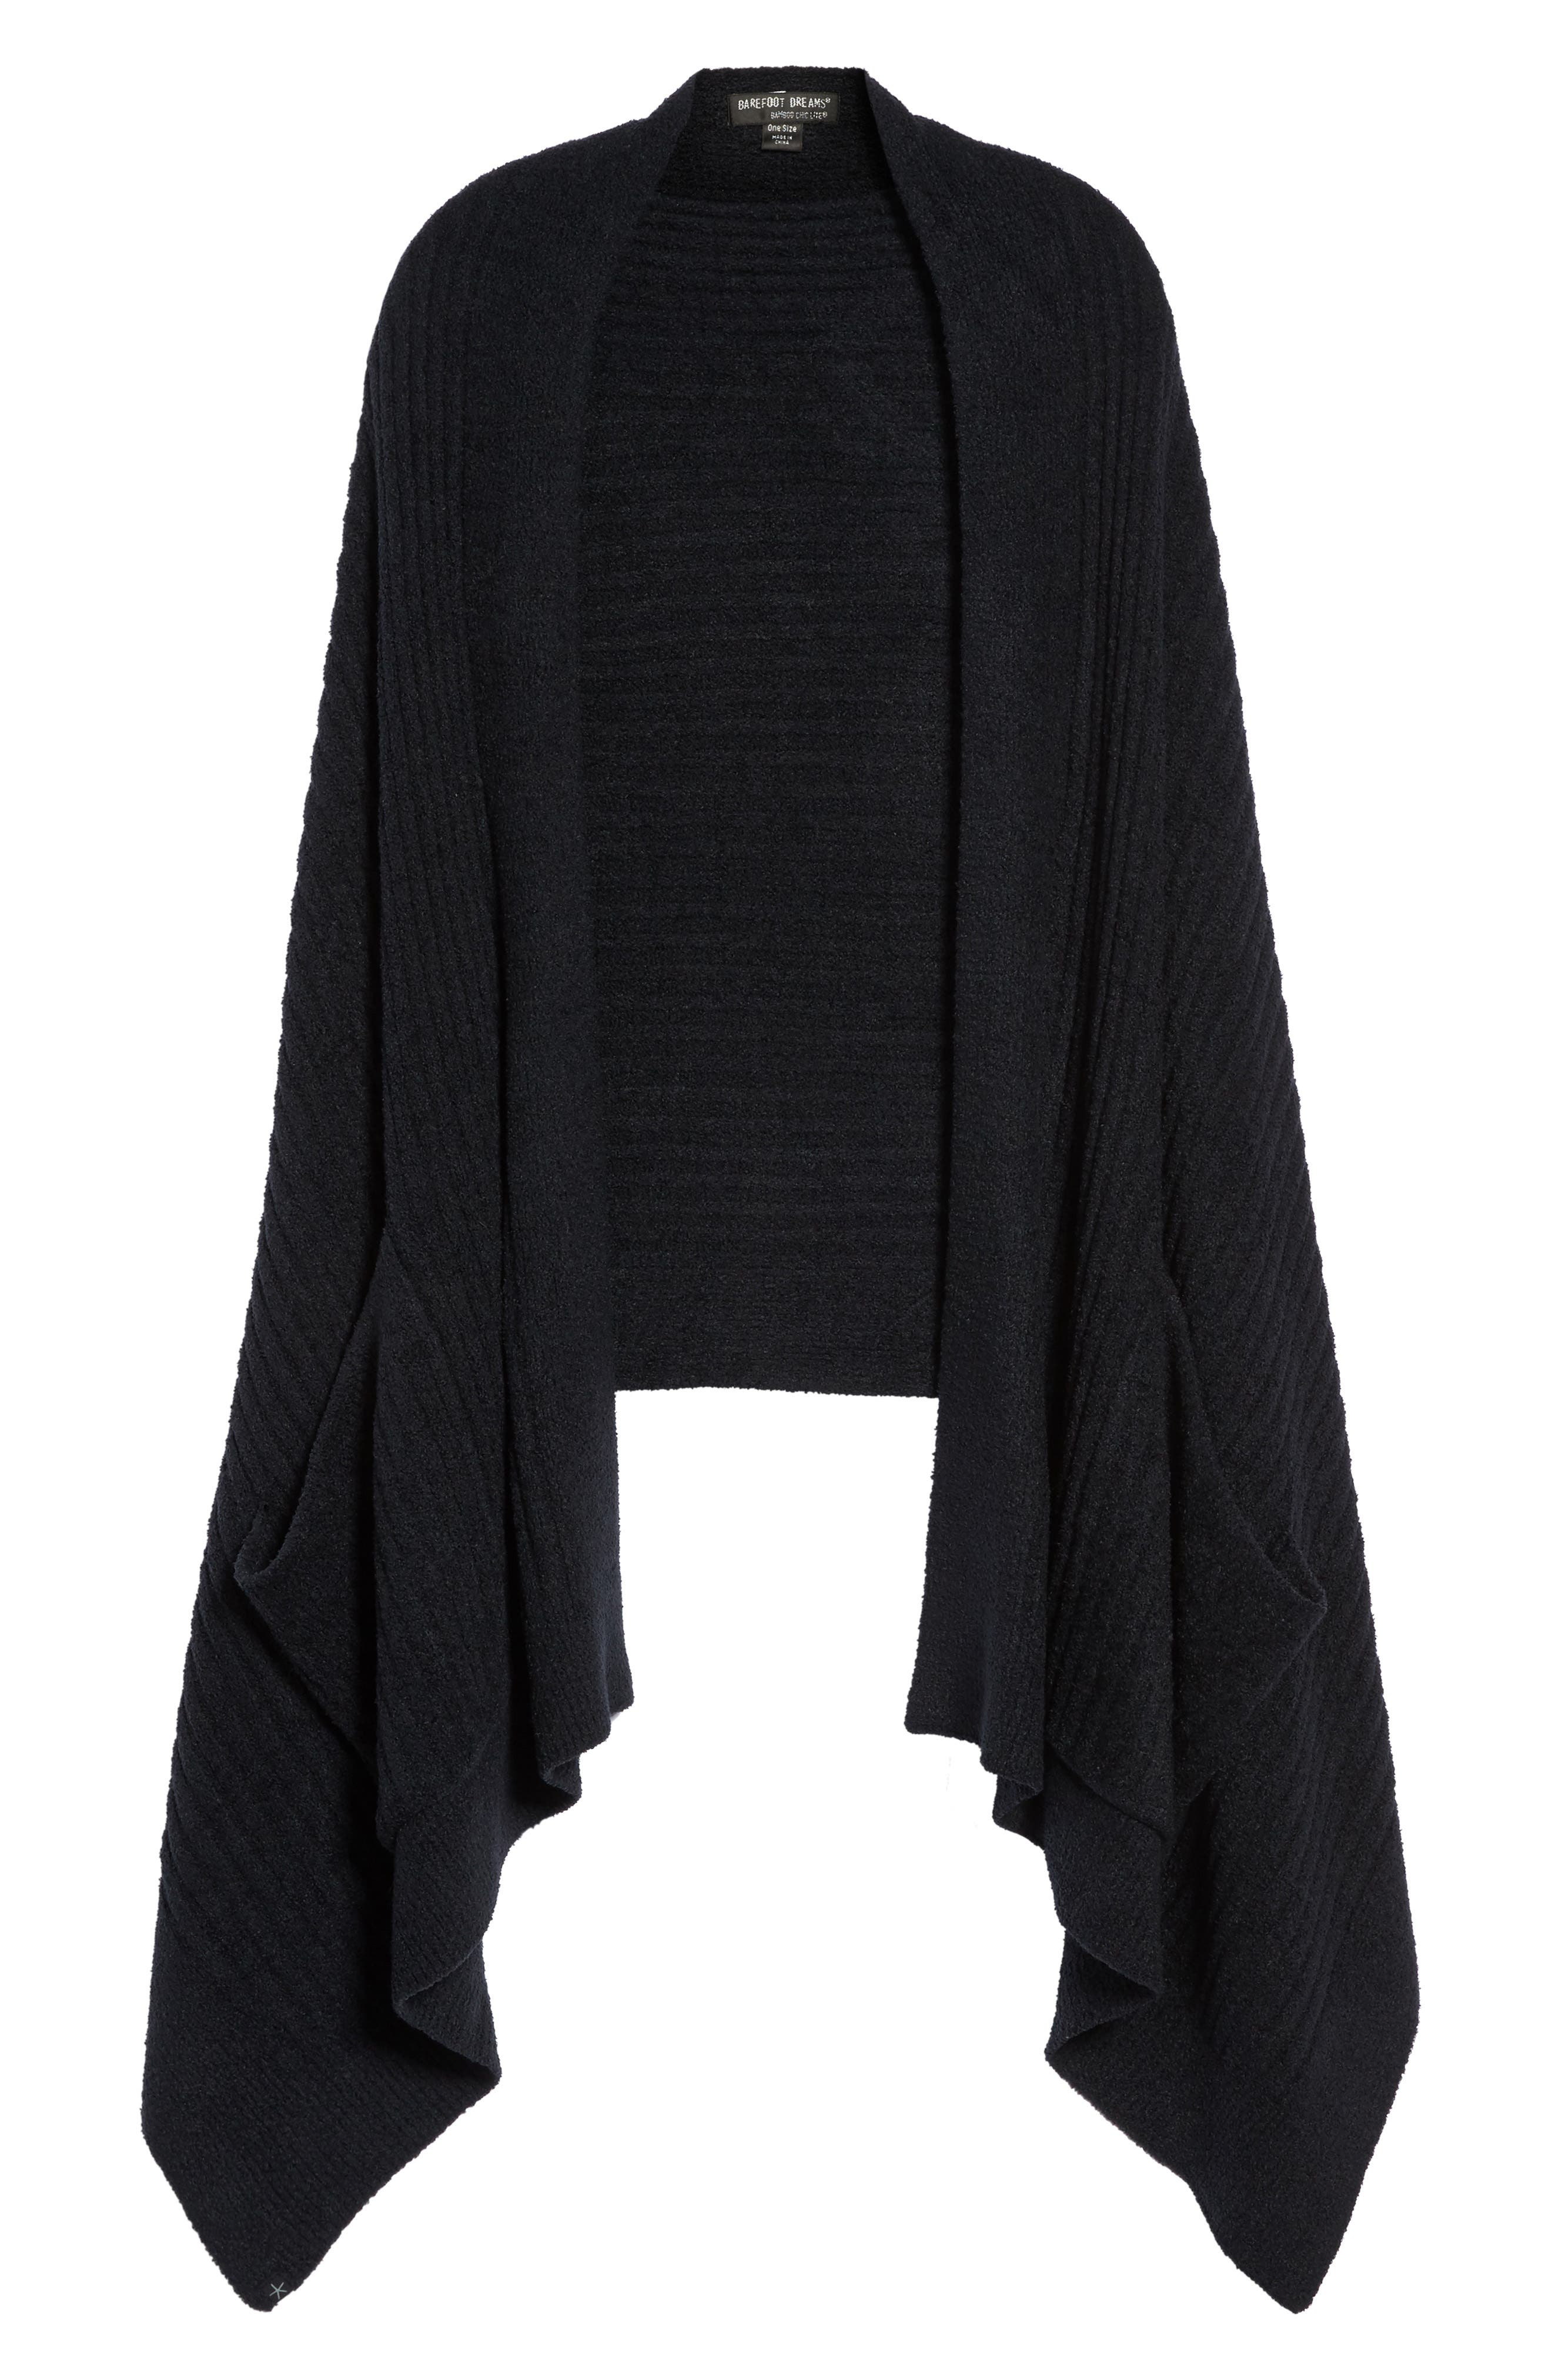 Cozychic Lite<sup>®</sup> Travel Shawl,                             Alternate thumbnail 4, color,                             Midnight